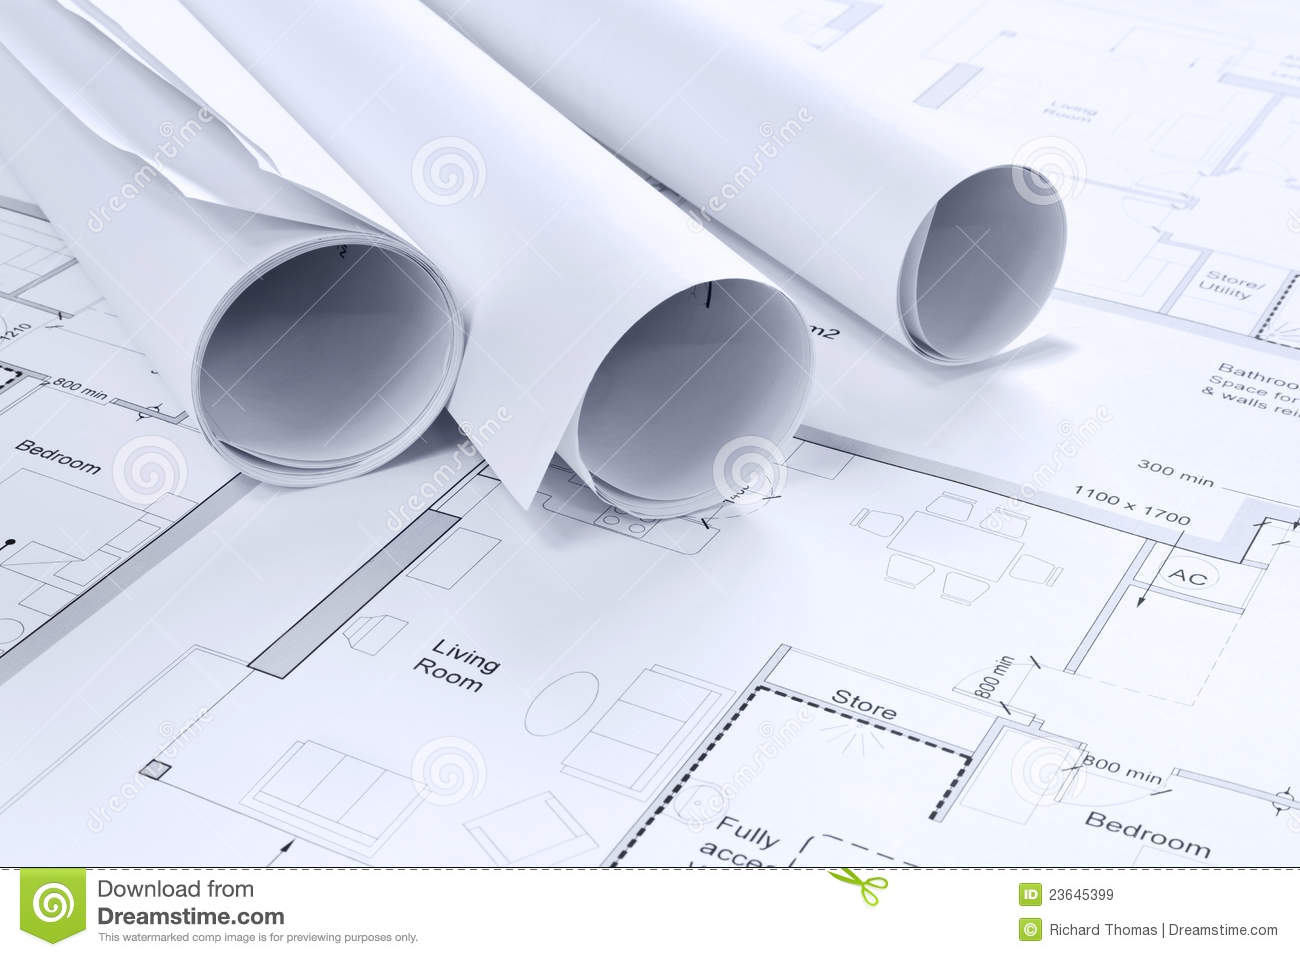 Architectural drawings background stock image image of for Online architecture design